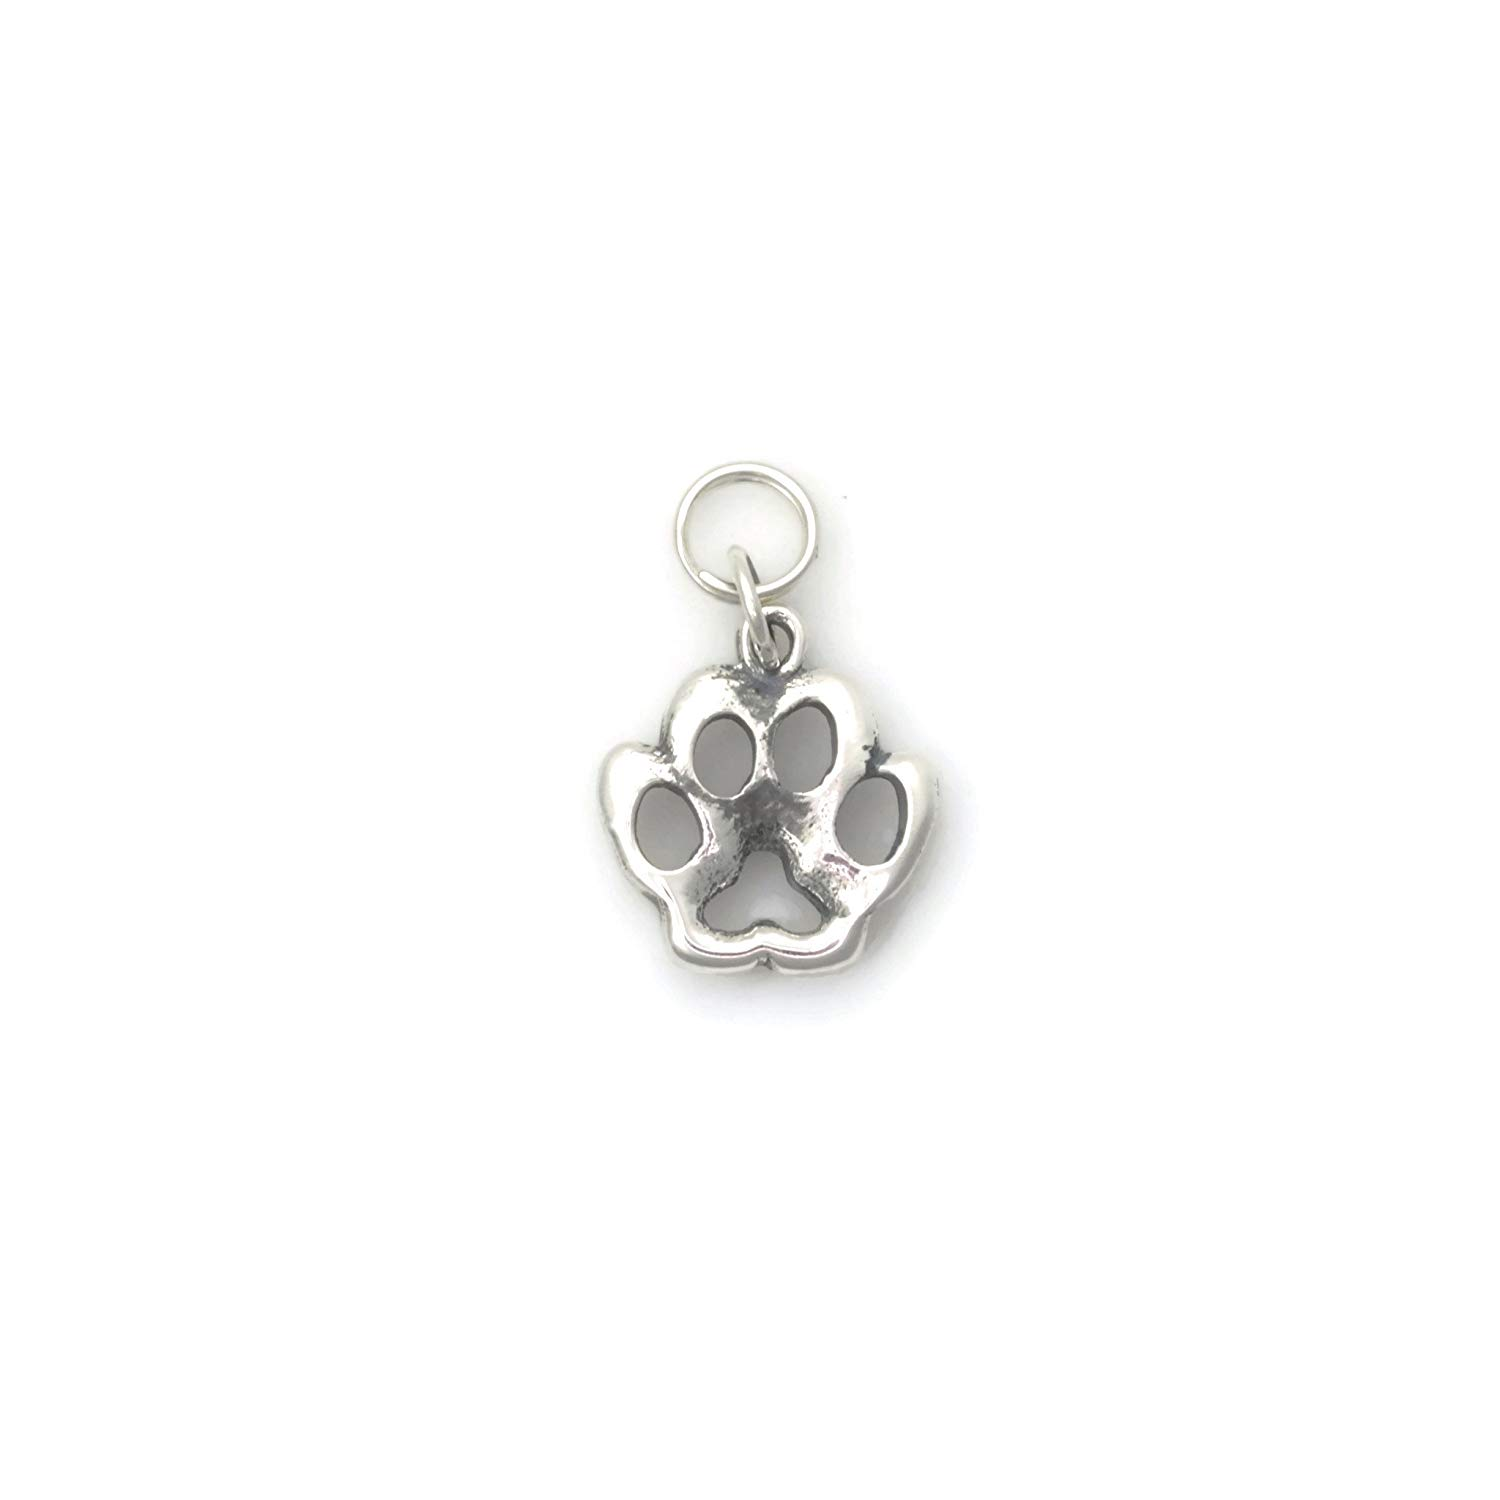 56189fa3e9d1d Cheap Gold Dog Paw Charm, find Gold Dog Paw Charm deals on line at ...